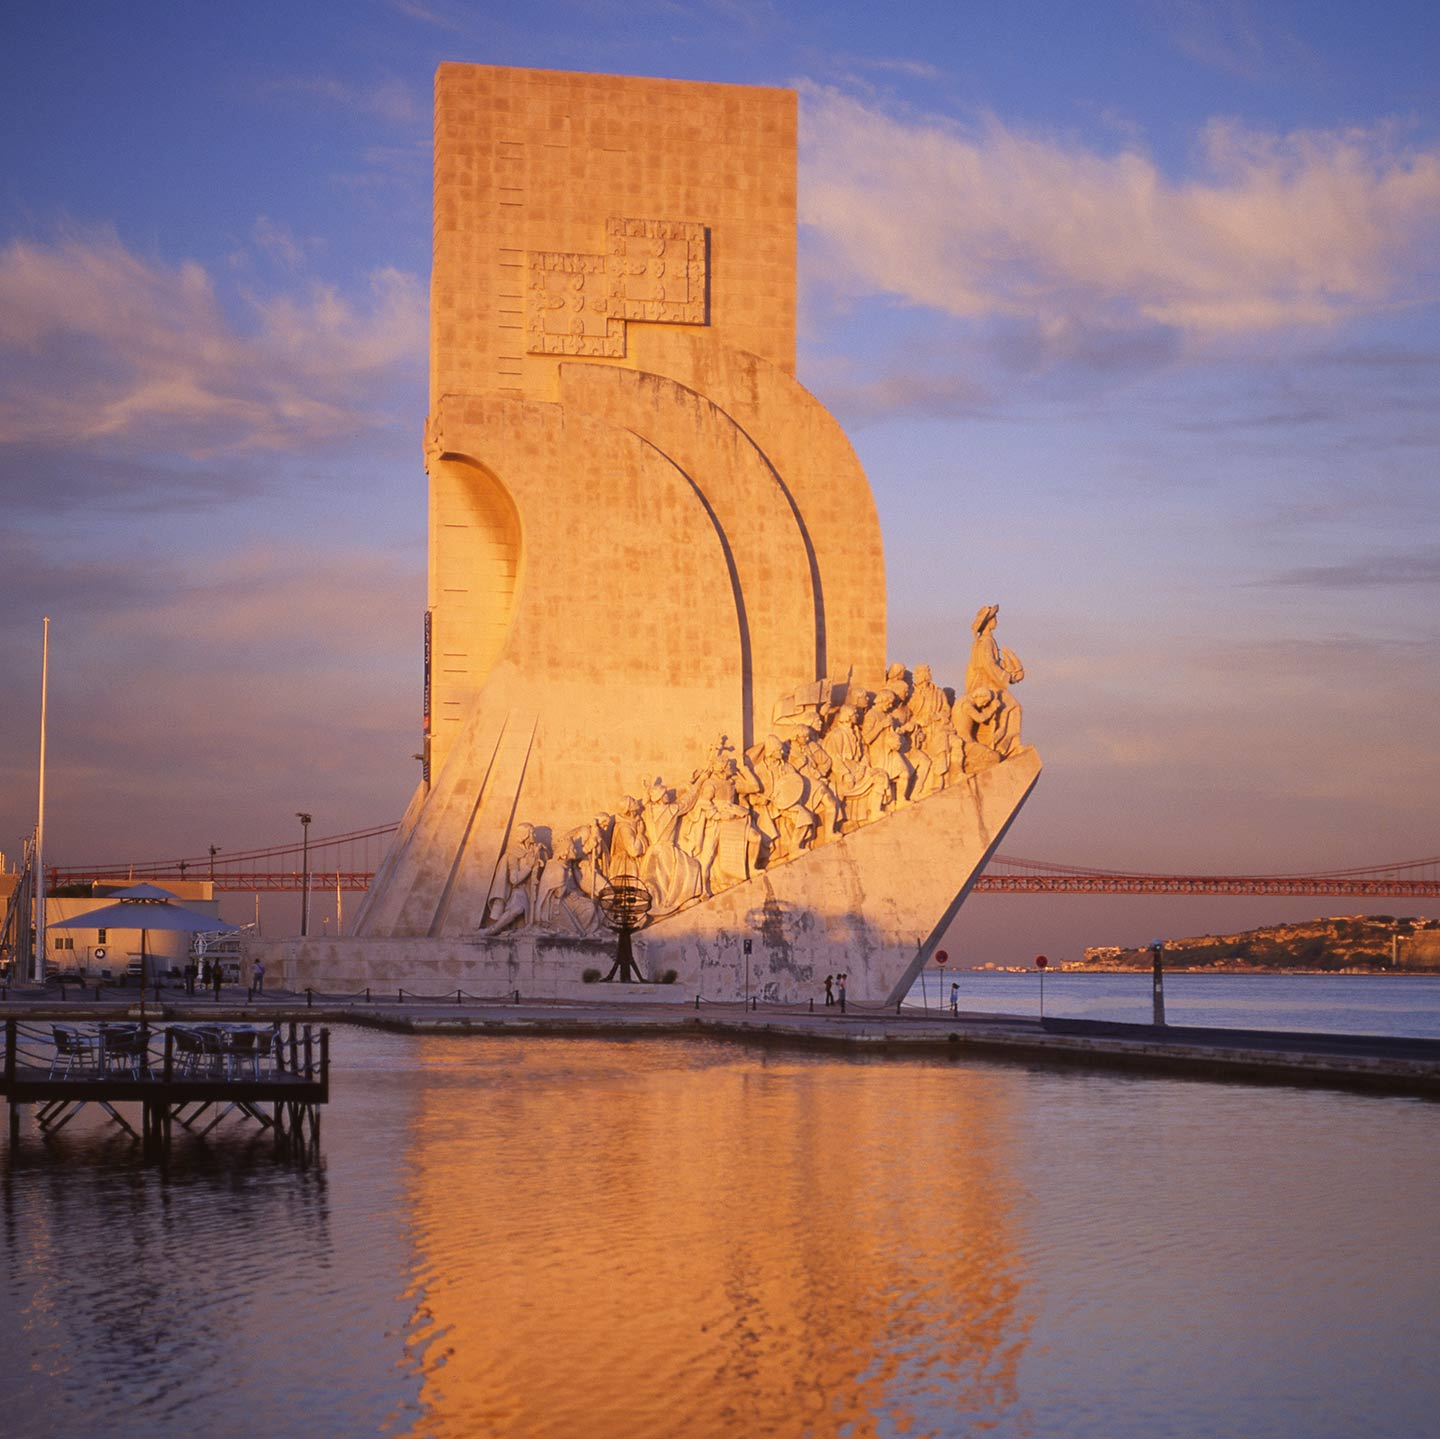 Image of the Monument to the Discoveries in Belem